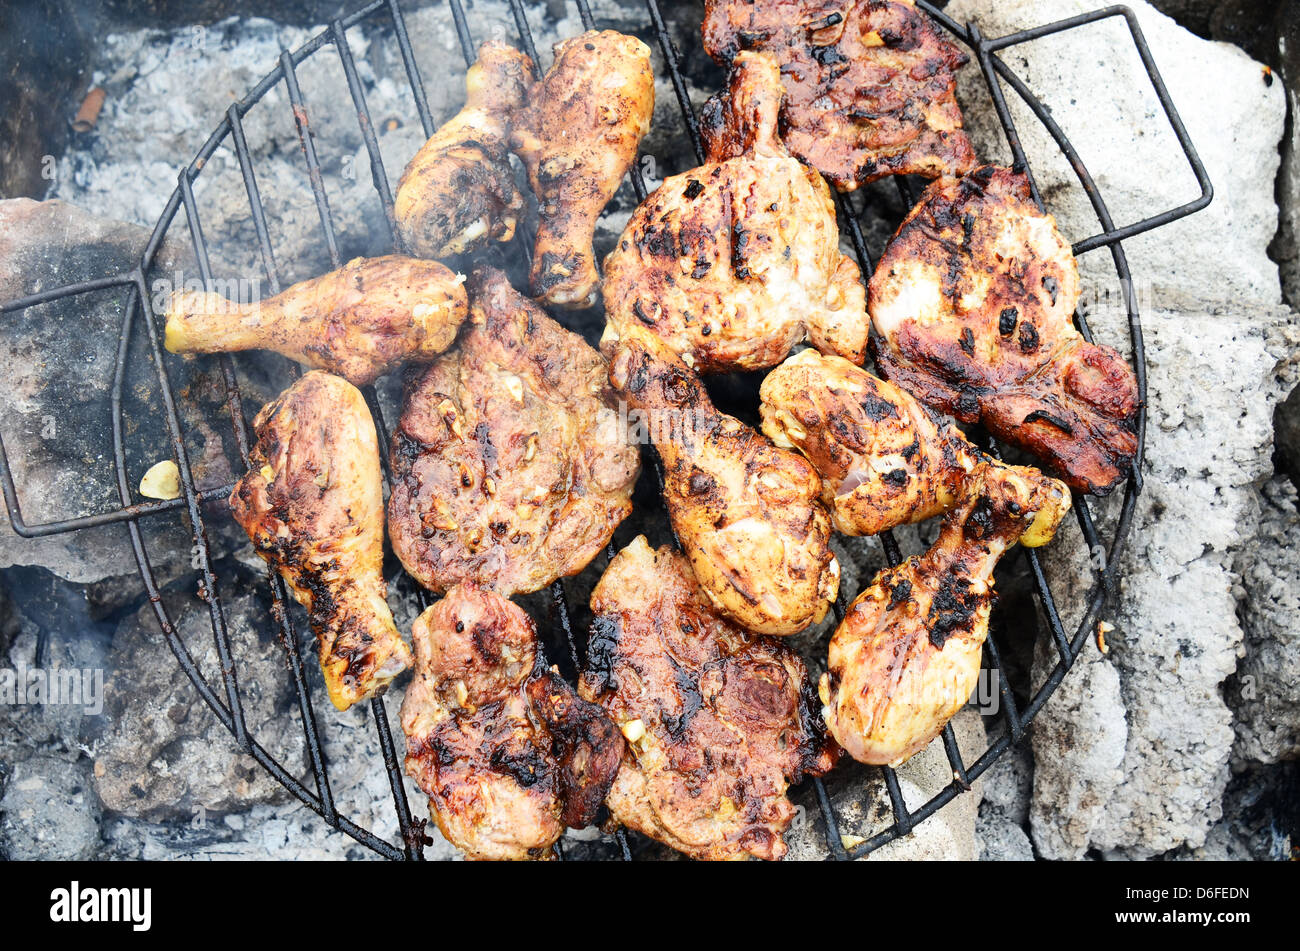 Chicken barbecue on outdoor camping - Stock Image